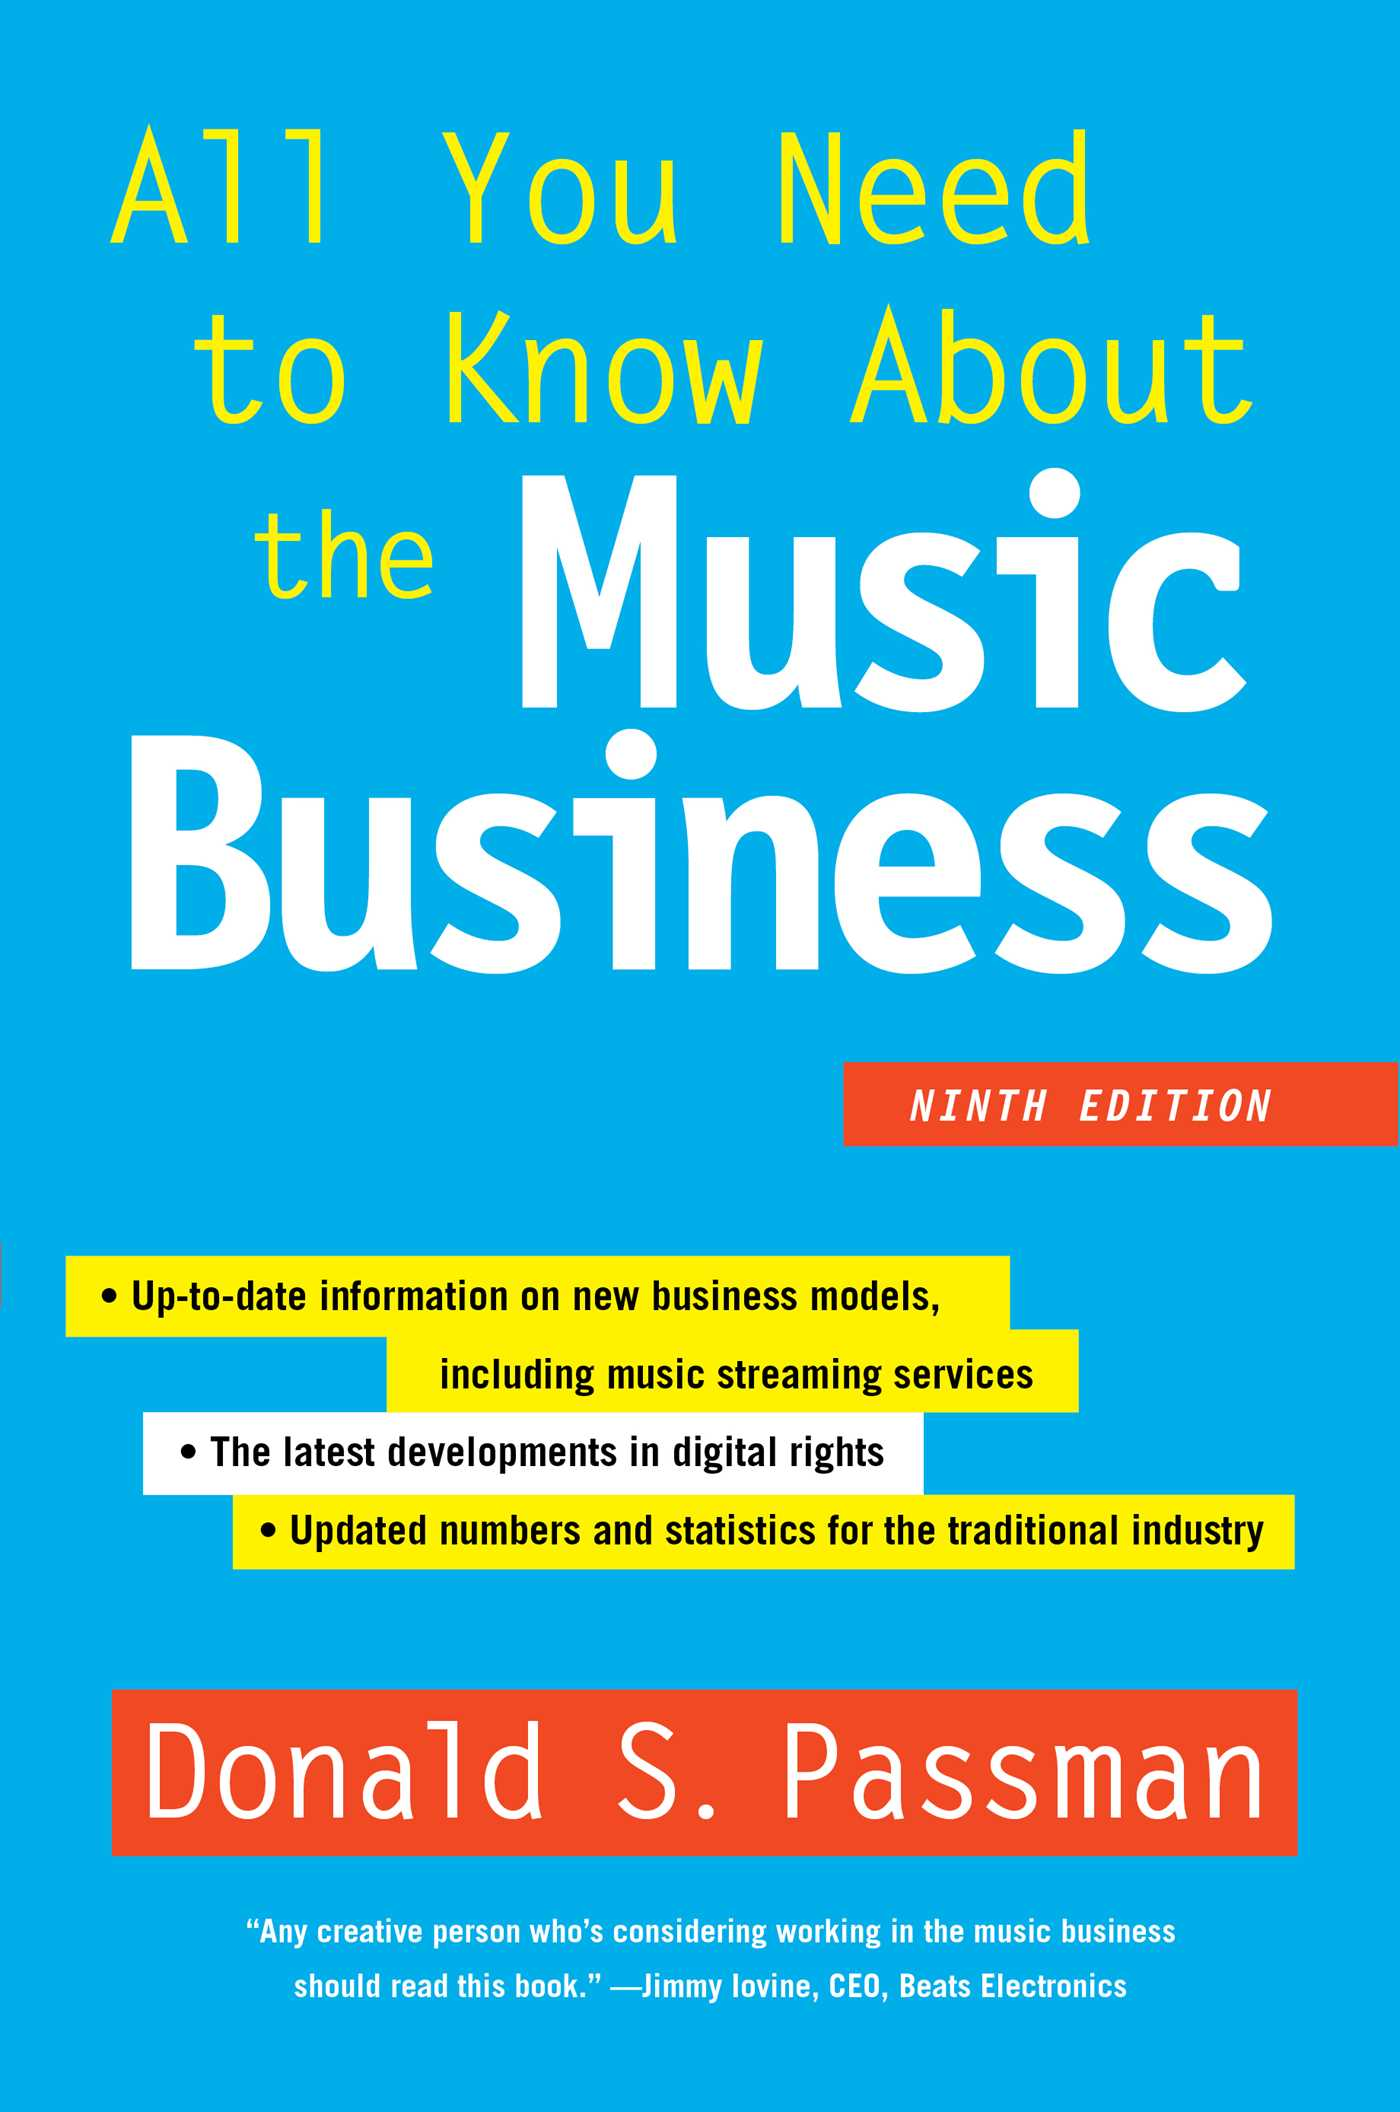 All-you-need-to-know-about-the-music-business-9781501104893_hr